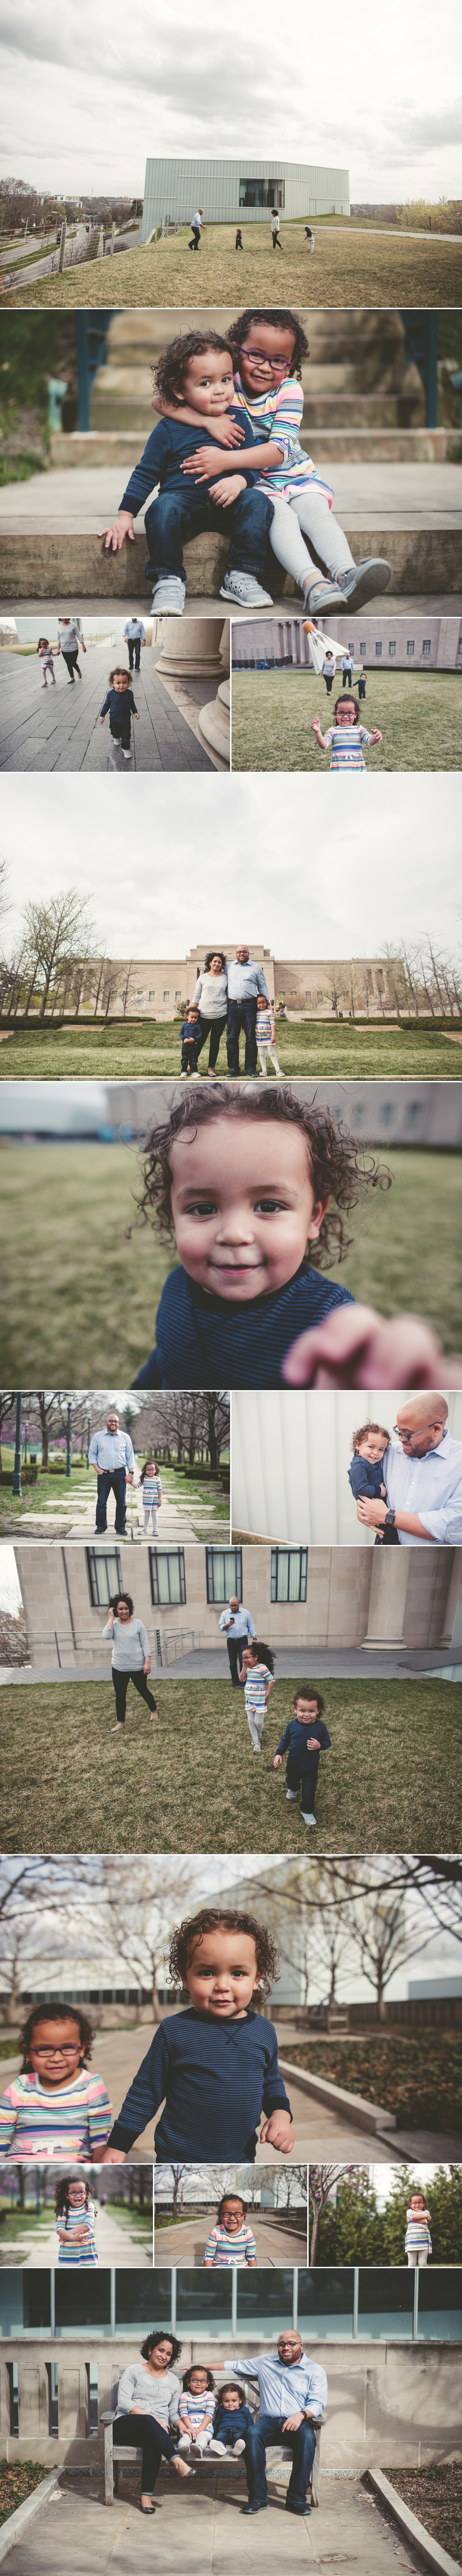 jason_domingues_photography_best_kansas_city_photographer_family_portraits_documentary_nelson_atkins_museum_kc